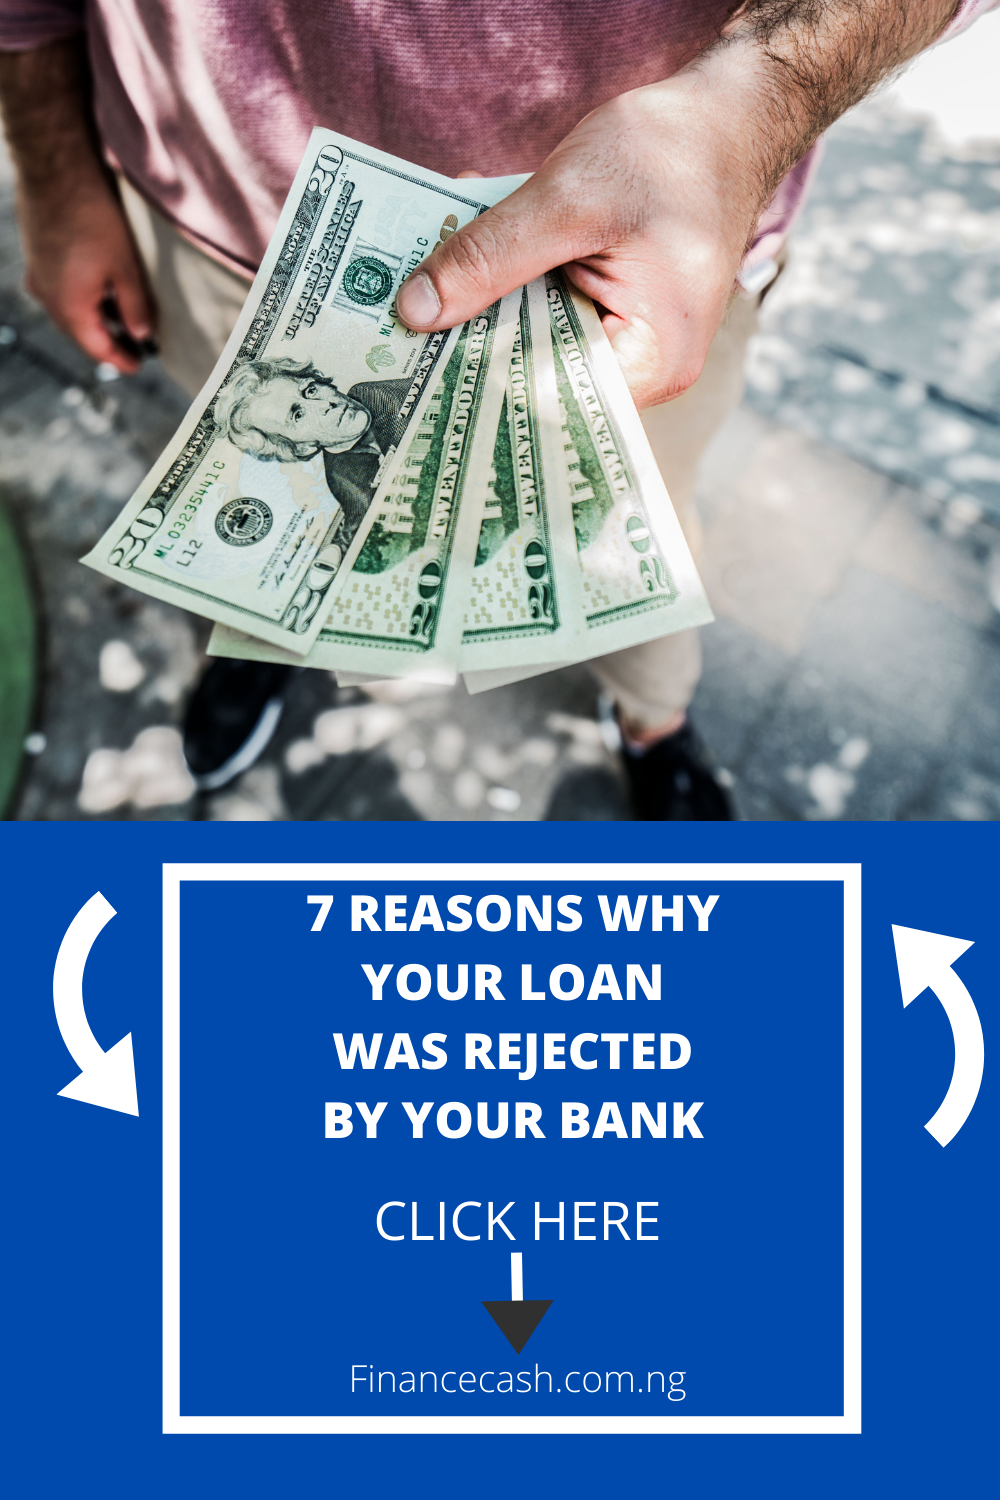 7 Reasons Why Your Loan Was Rejected By Your Bank In 2020 Loans For Bad Credit Personal Loans Online Loan